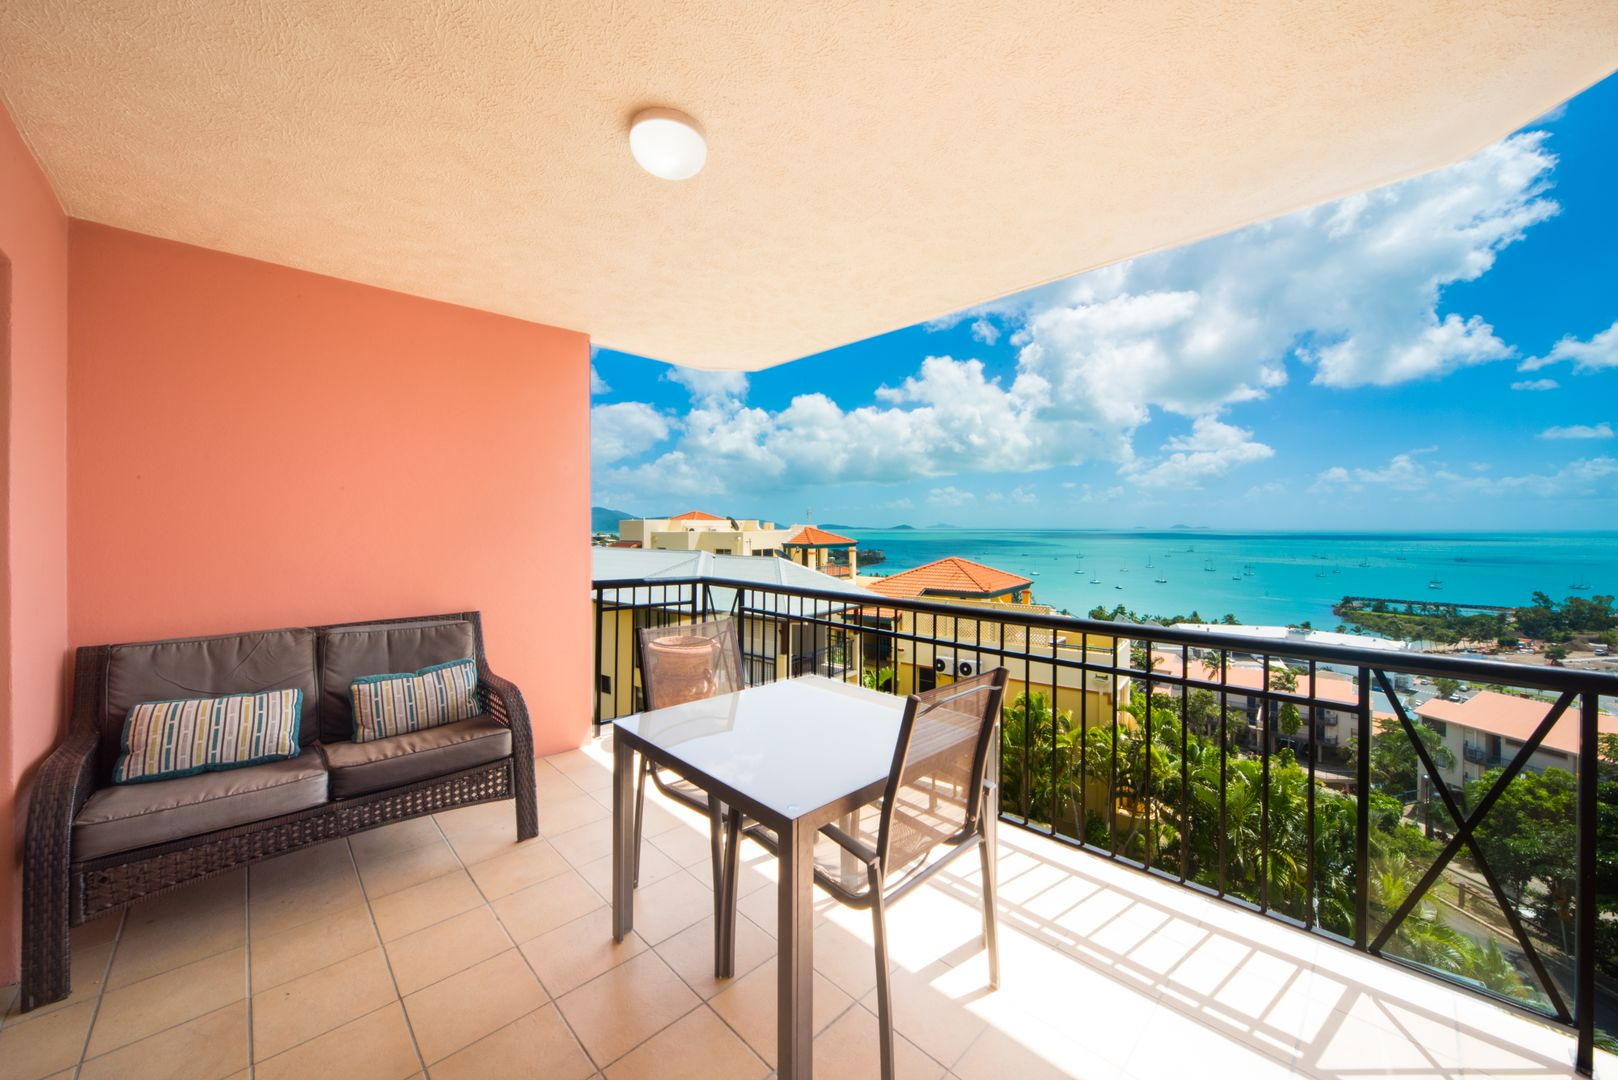 16/18 Golden Orchid Drive, Airlie Beach QLD 4802, Image 2